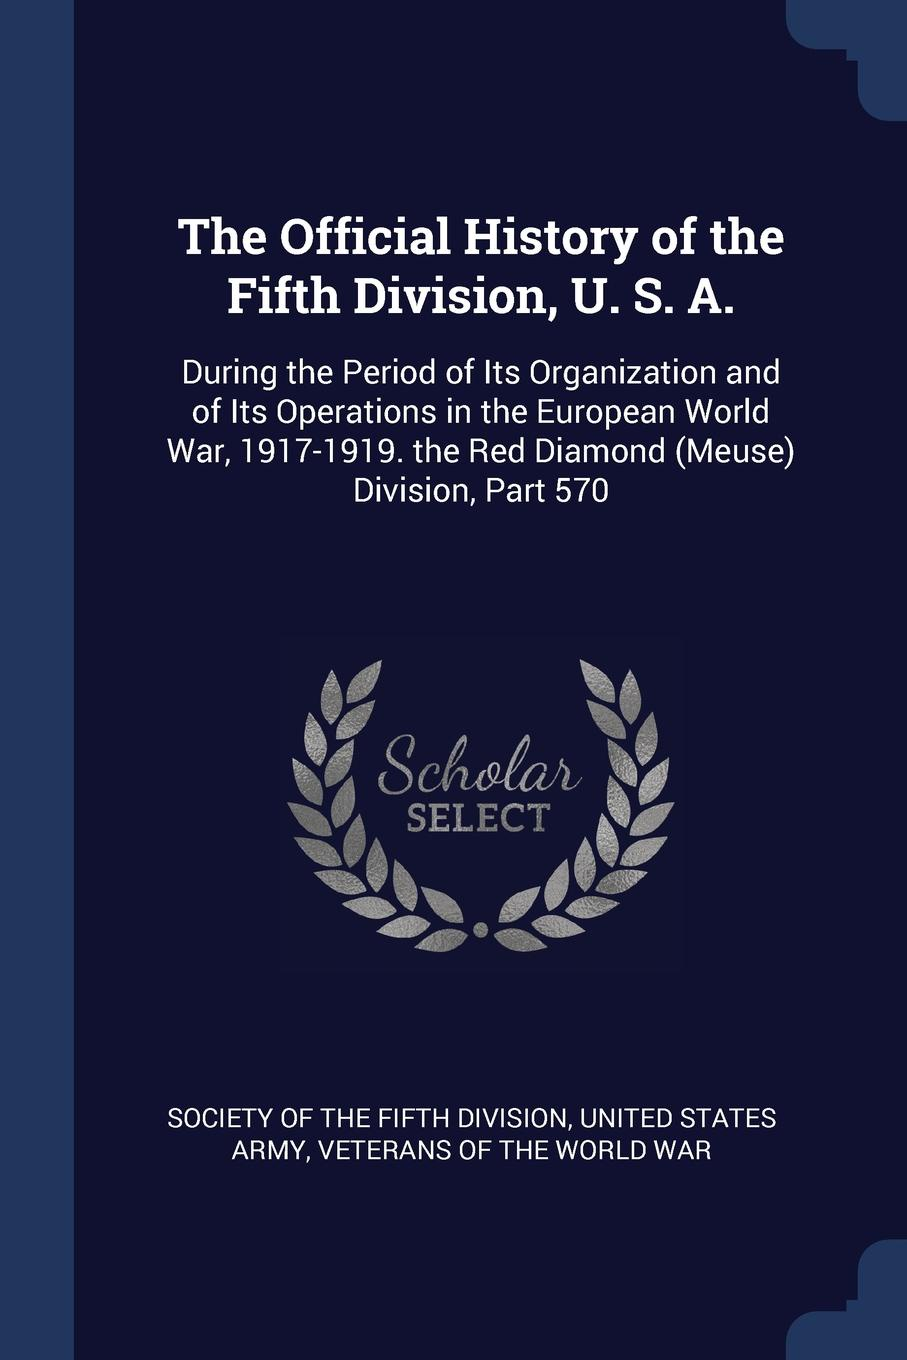 Фото - The Official History of the Fifth Division, U. S. A. During the Period of Its Organization and of Its Operations in the European World War, 1917-1919. the Red Diamond (Meuse) Division, Part 570 history of the 89th division u s a from its organization in 1917 through its operations in the world war the occupation of germany and until demobilization in 1919